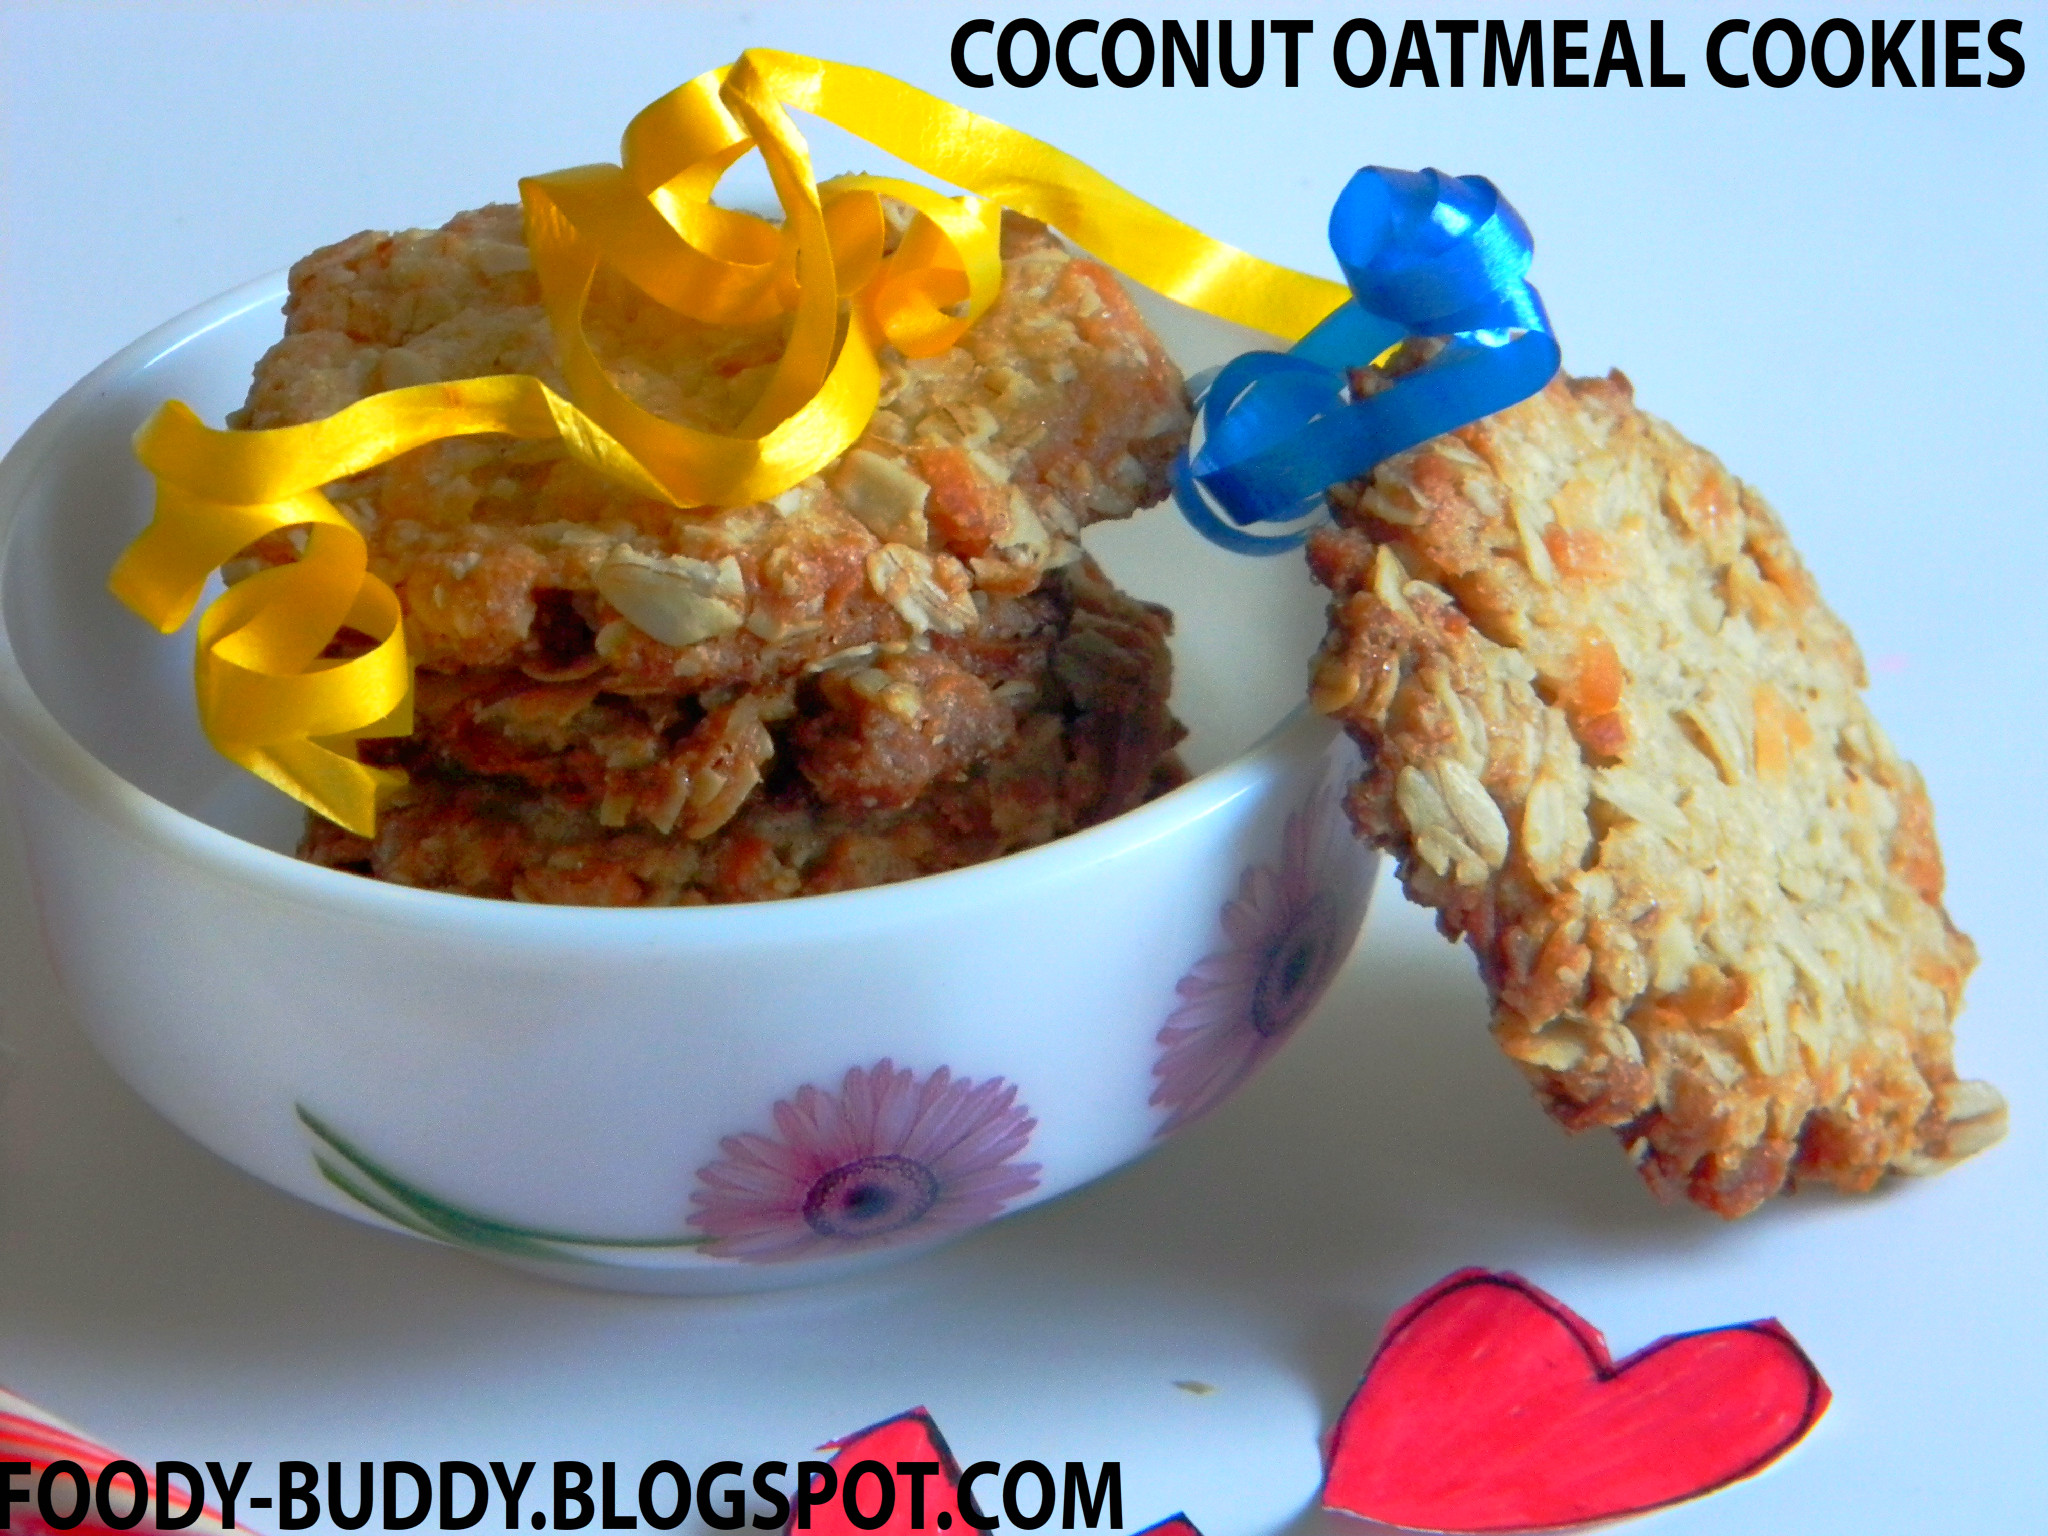 COCONUT OATMEAL COOKIES WITH COCONUT OIL – eRecipe